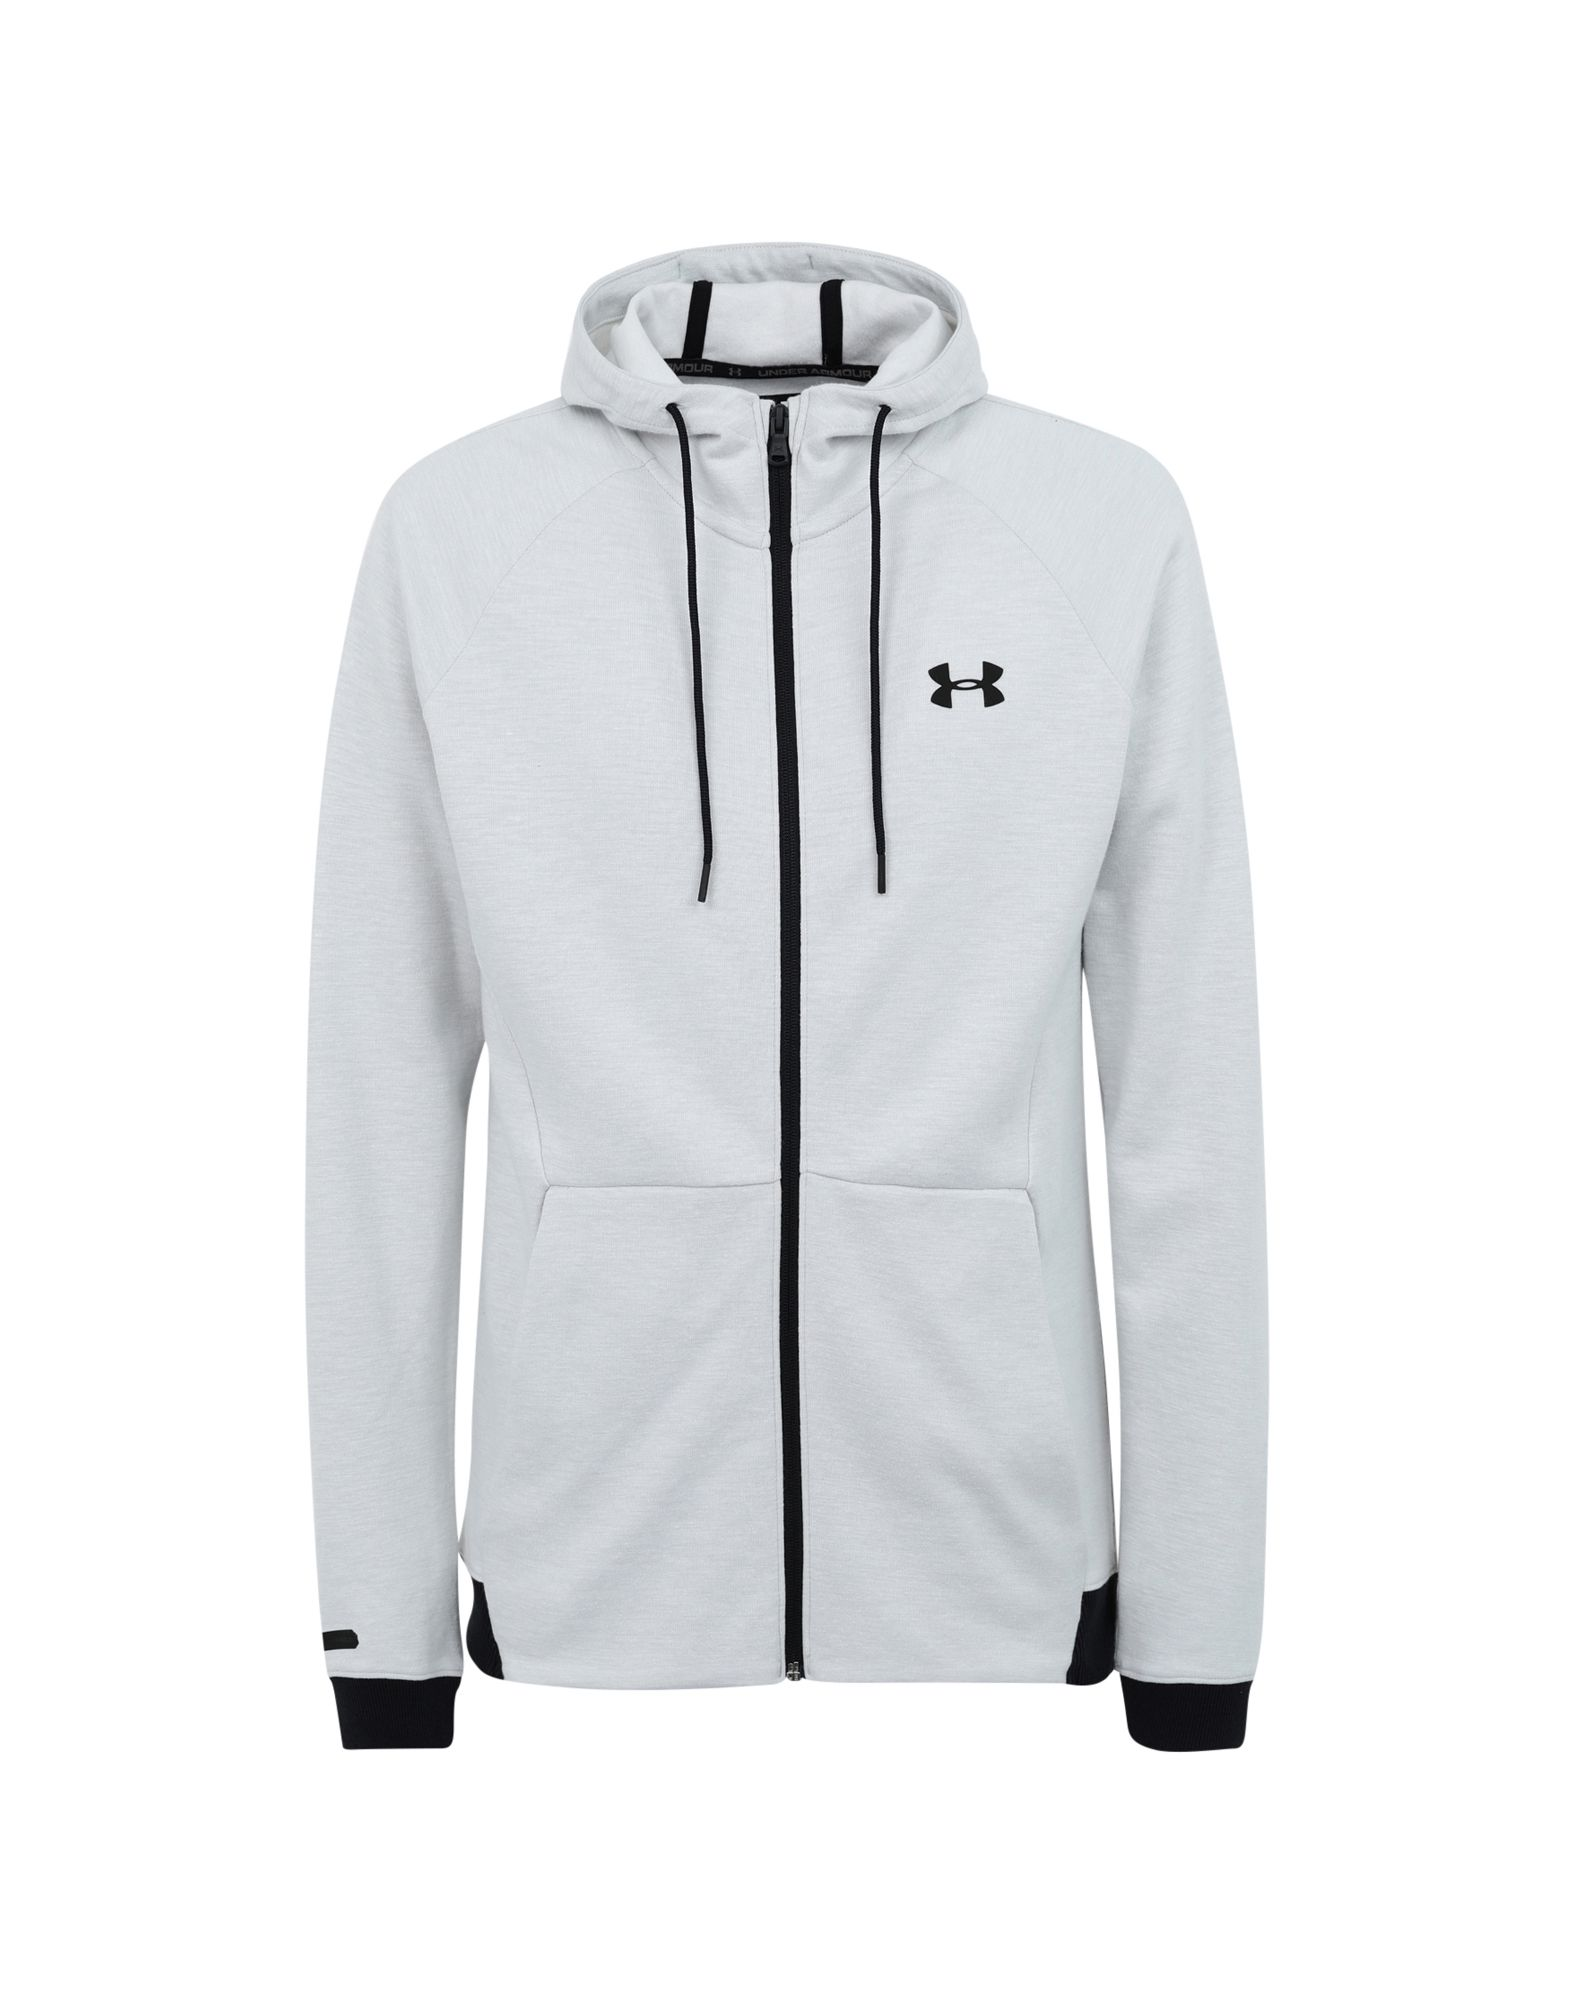 Under Armour hoodie Unstoppable 2x Knit FZ Grigio